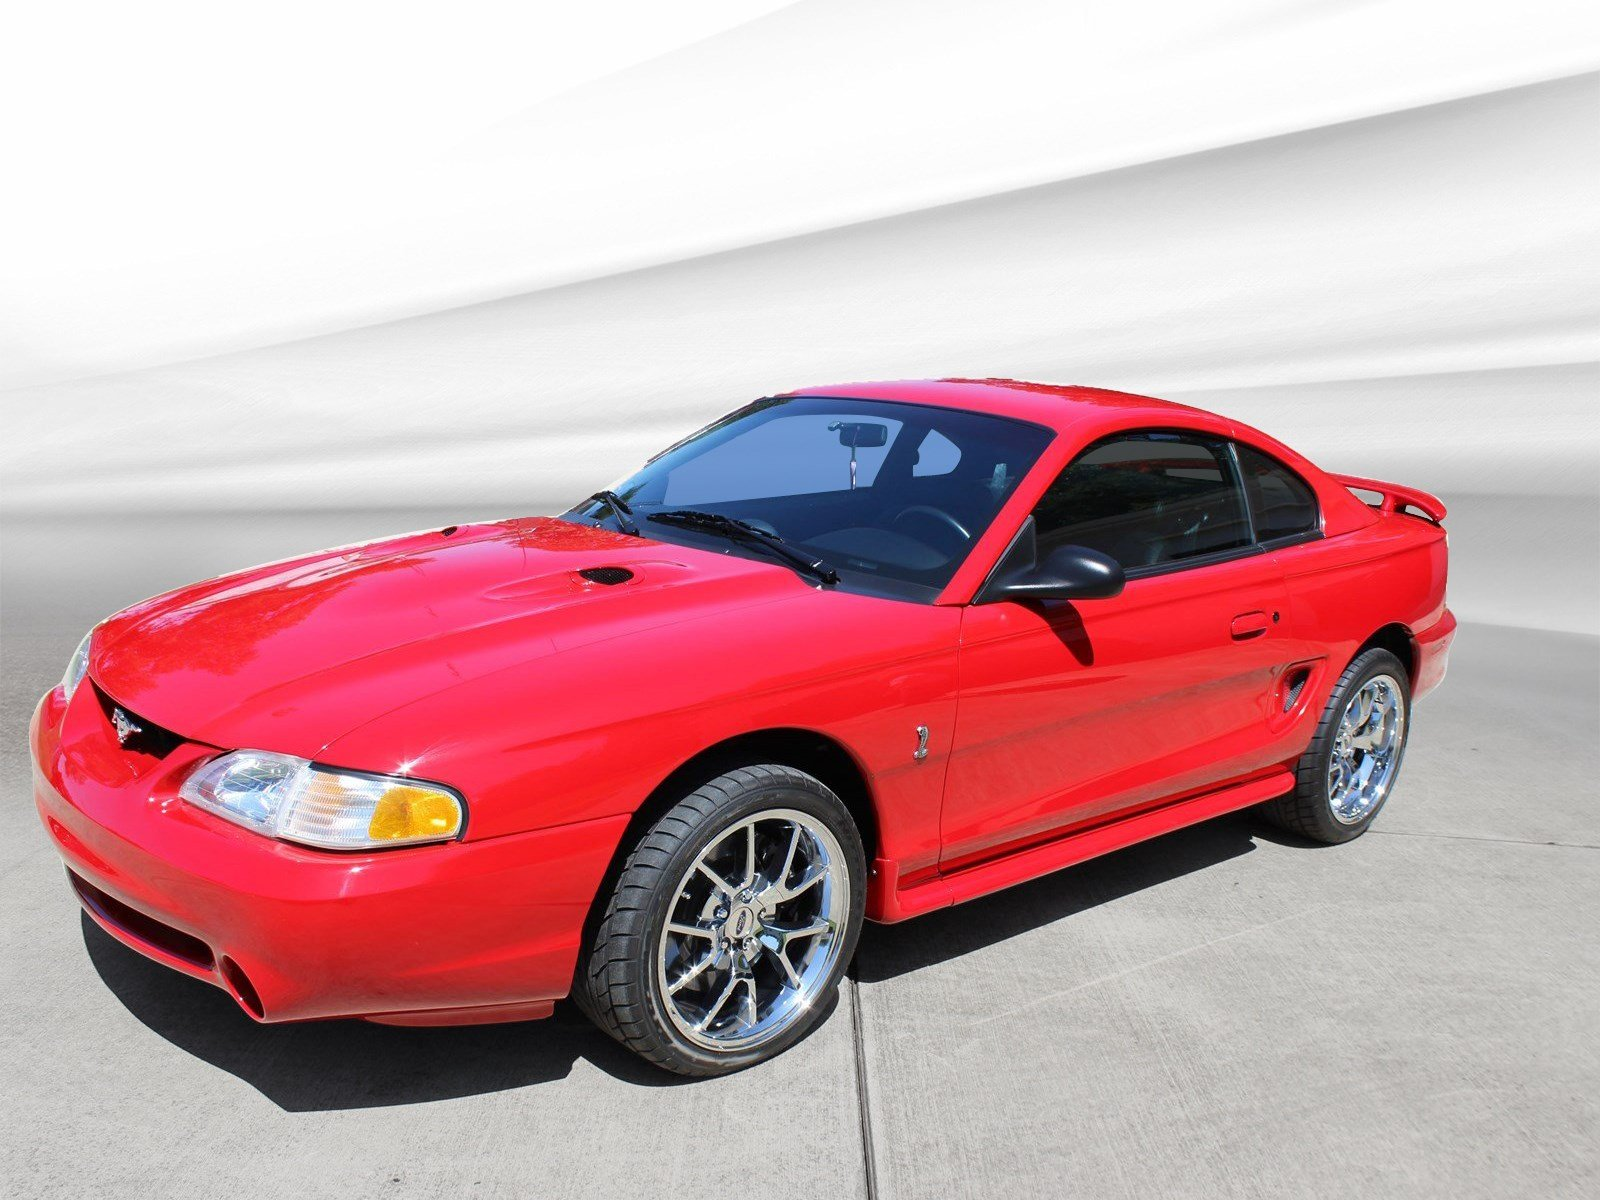 97 Ford Mustang